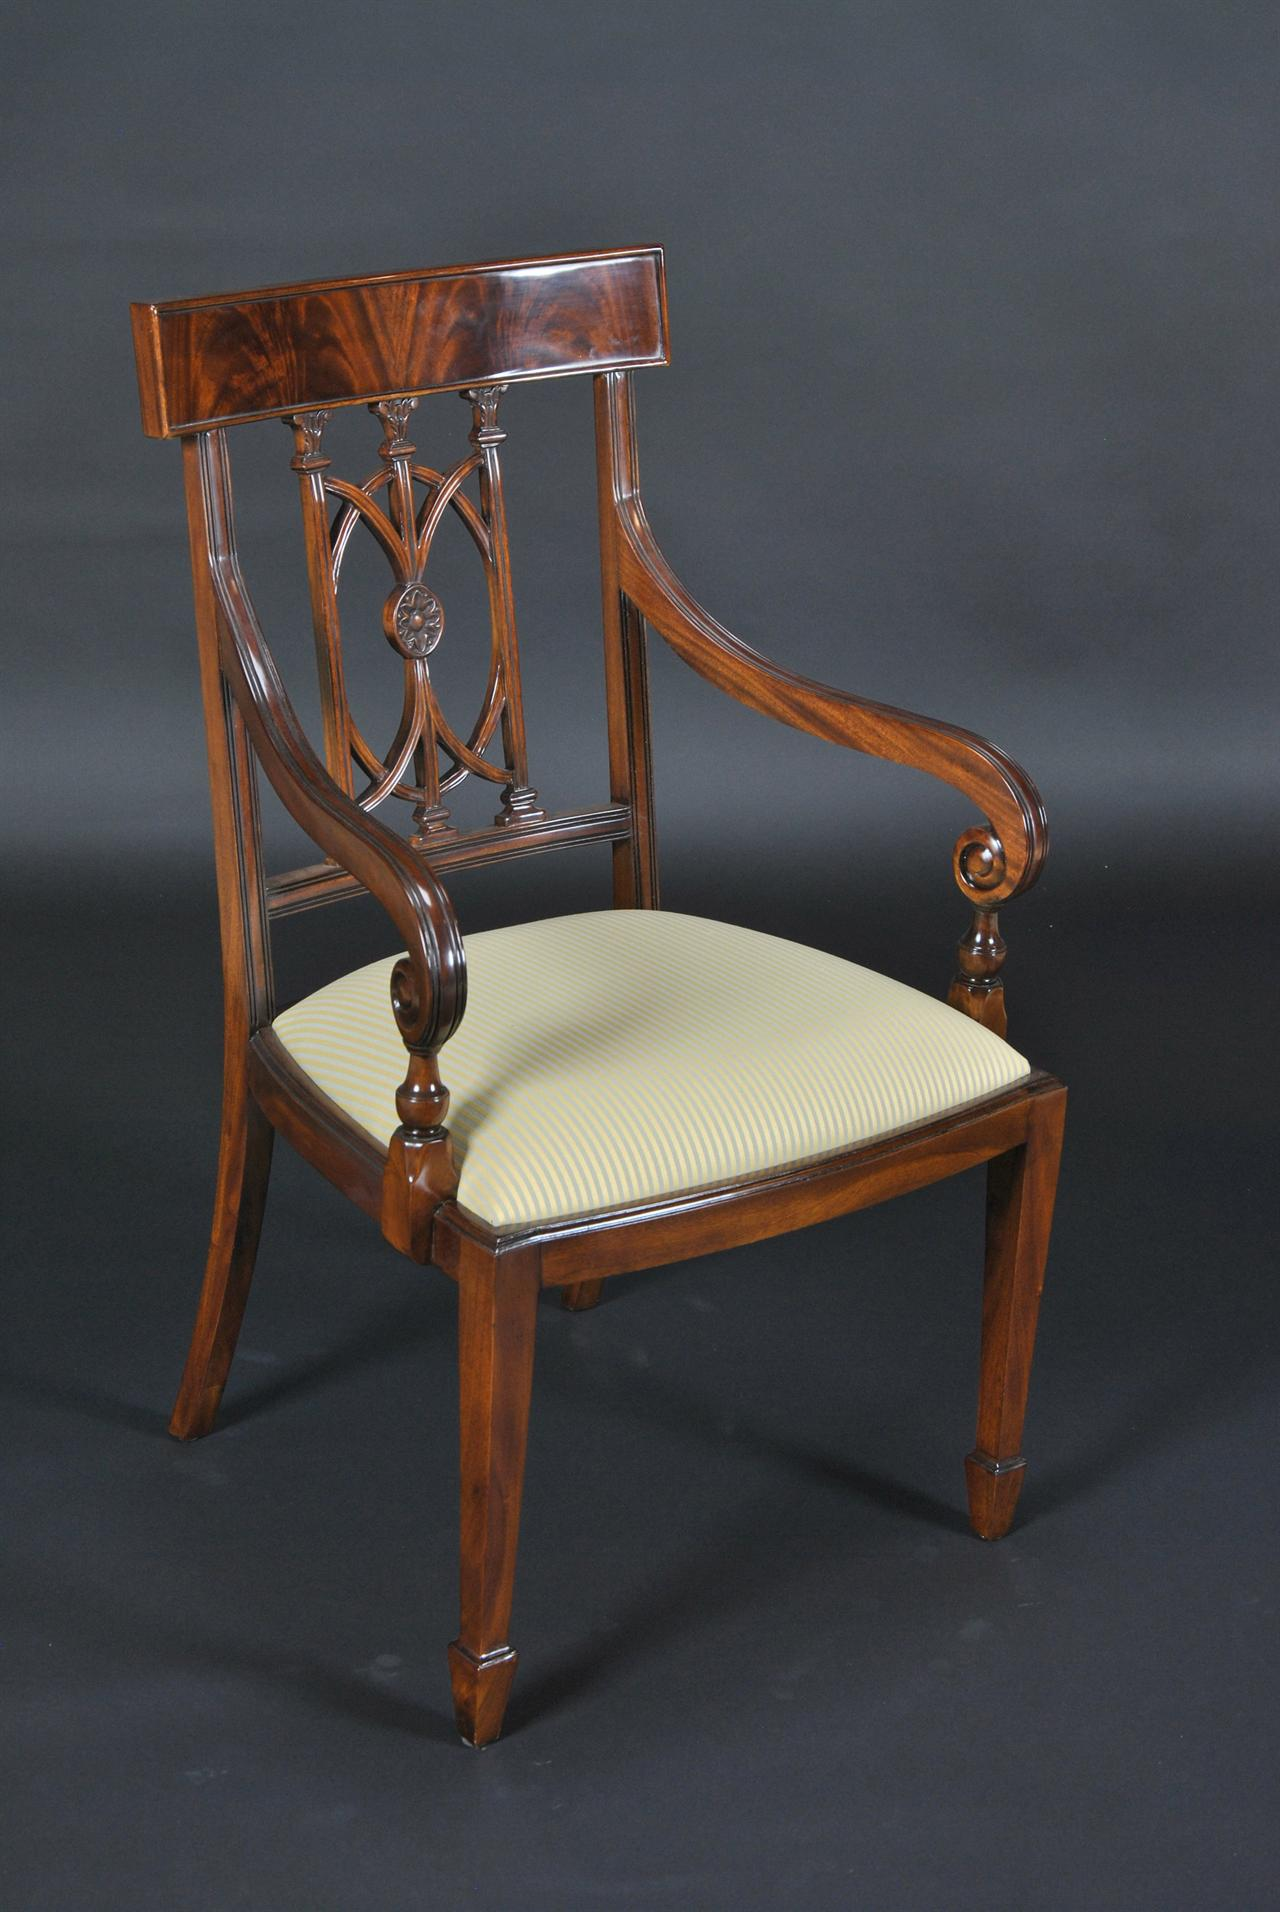 Hepplewhite style dining chairs with swirl mahogany crest